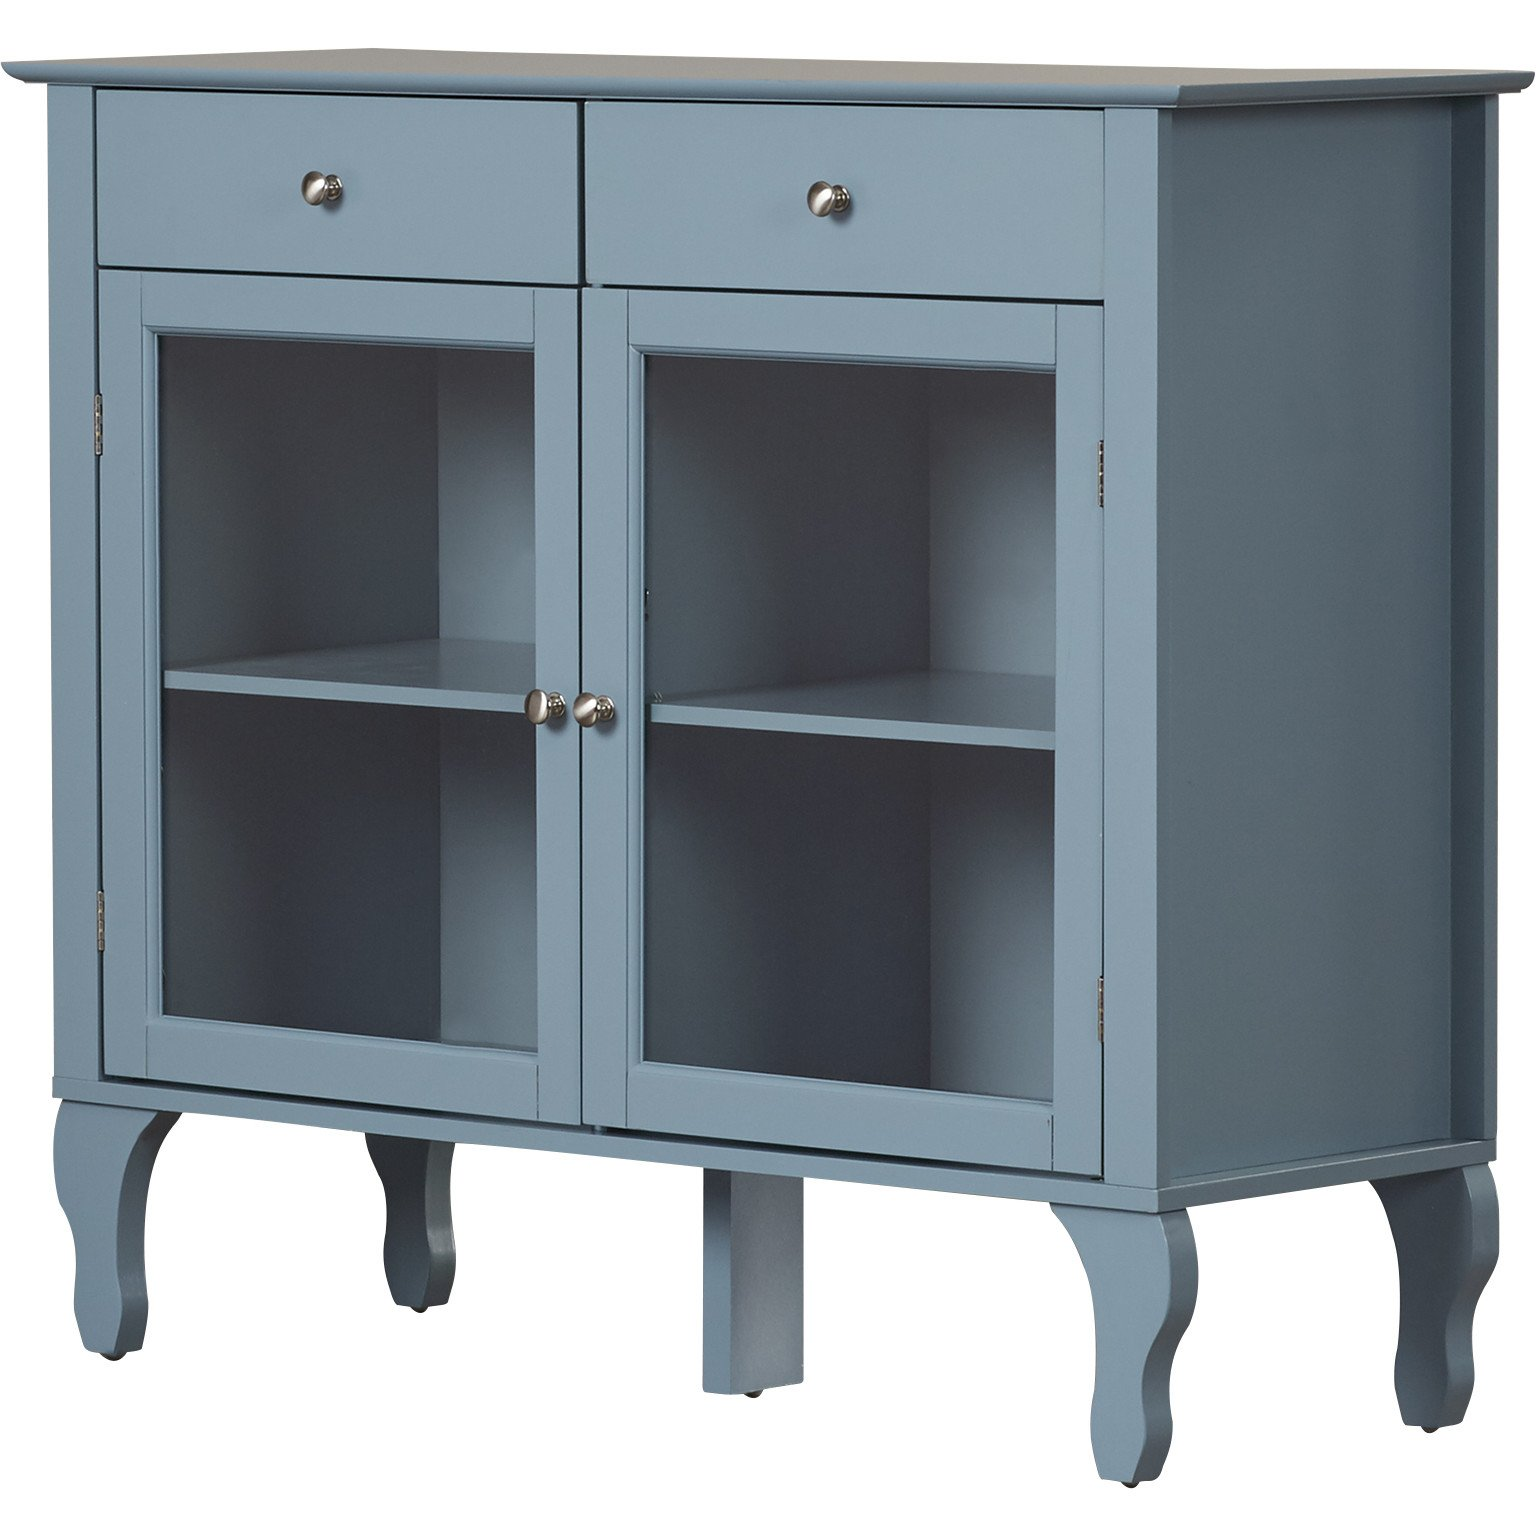 Kenya Sideboard/Buffet in Antique Blue Finish with 2 Drawers and 2 Glass Door Cabinets Storage 36'' H x 42'' W x 15'' D